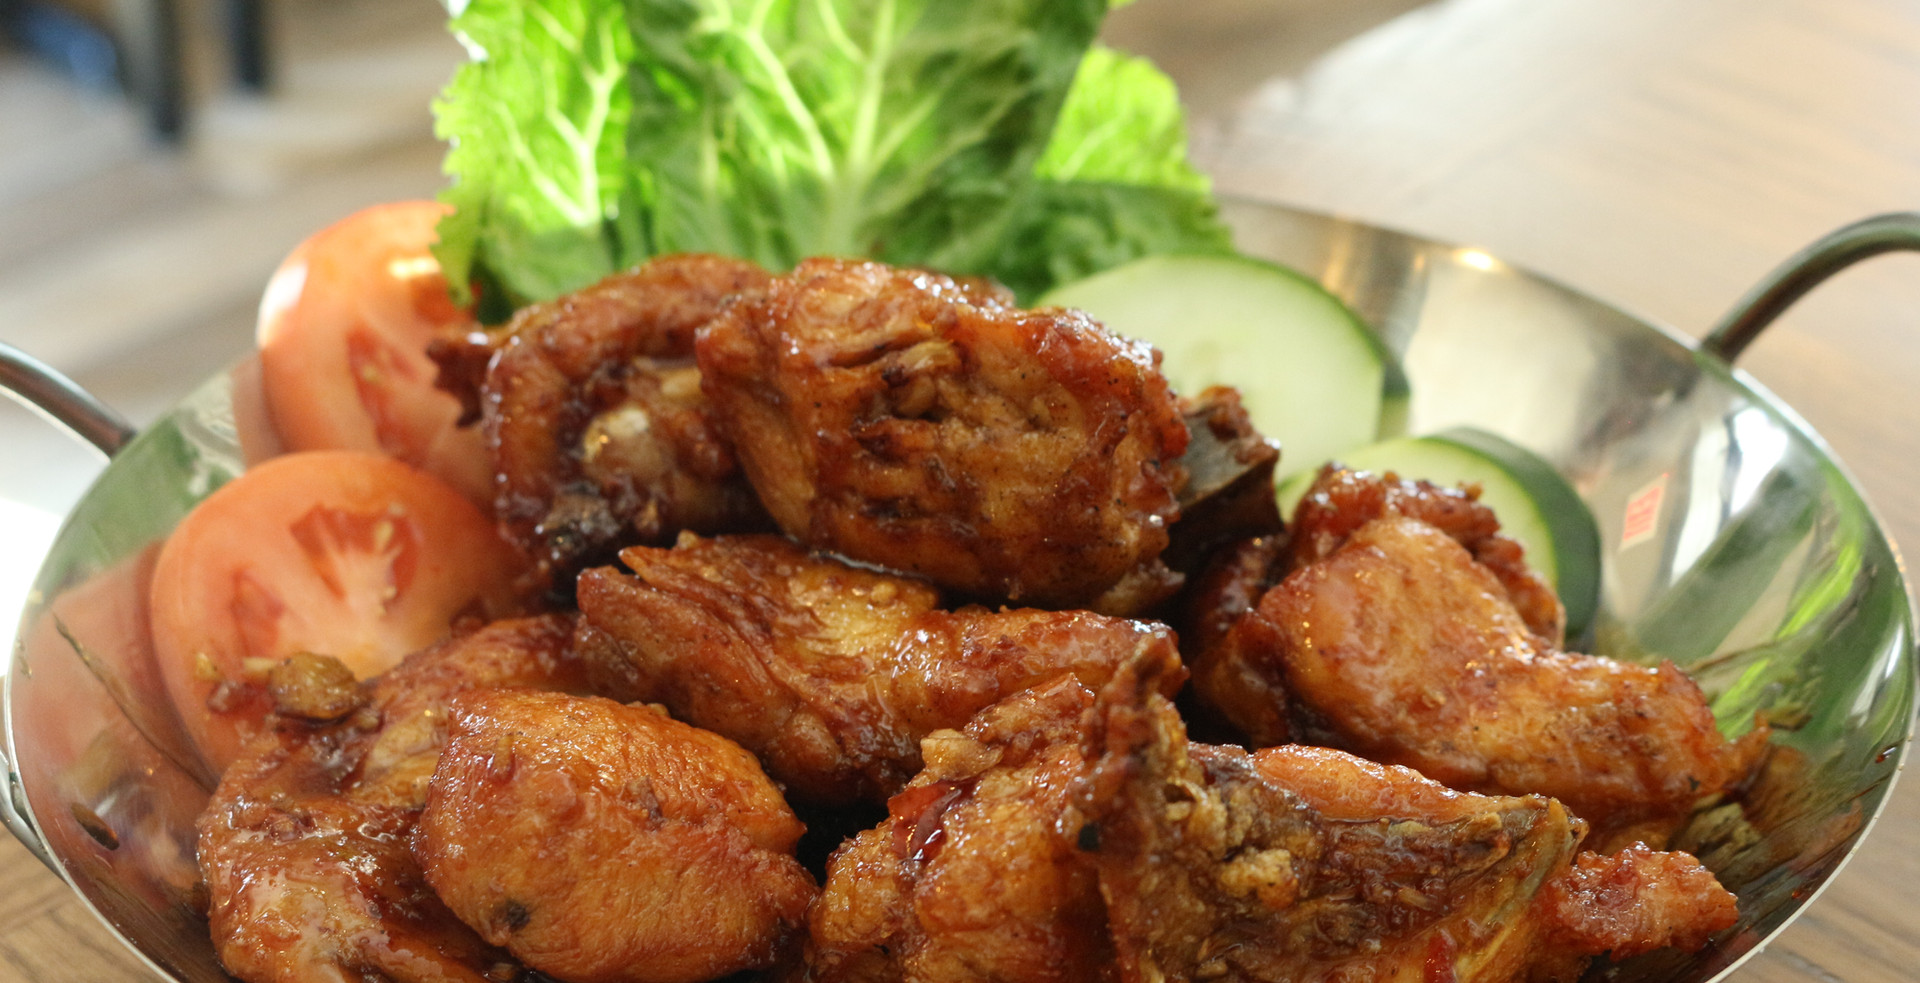 Deep Fried Chicken with Sweet and Sour Sauce